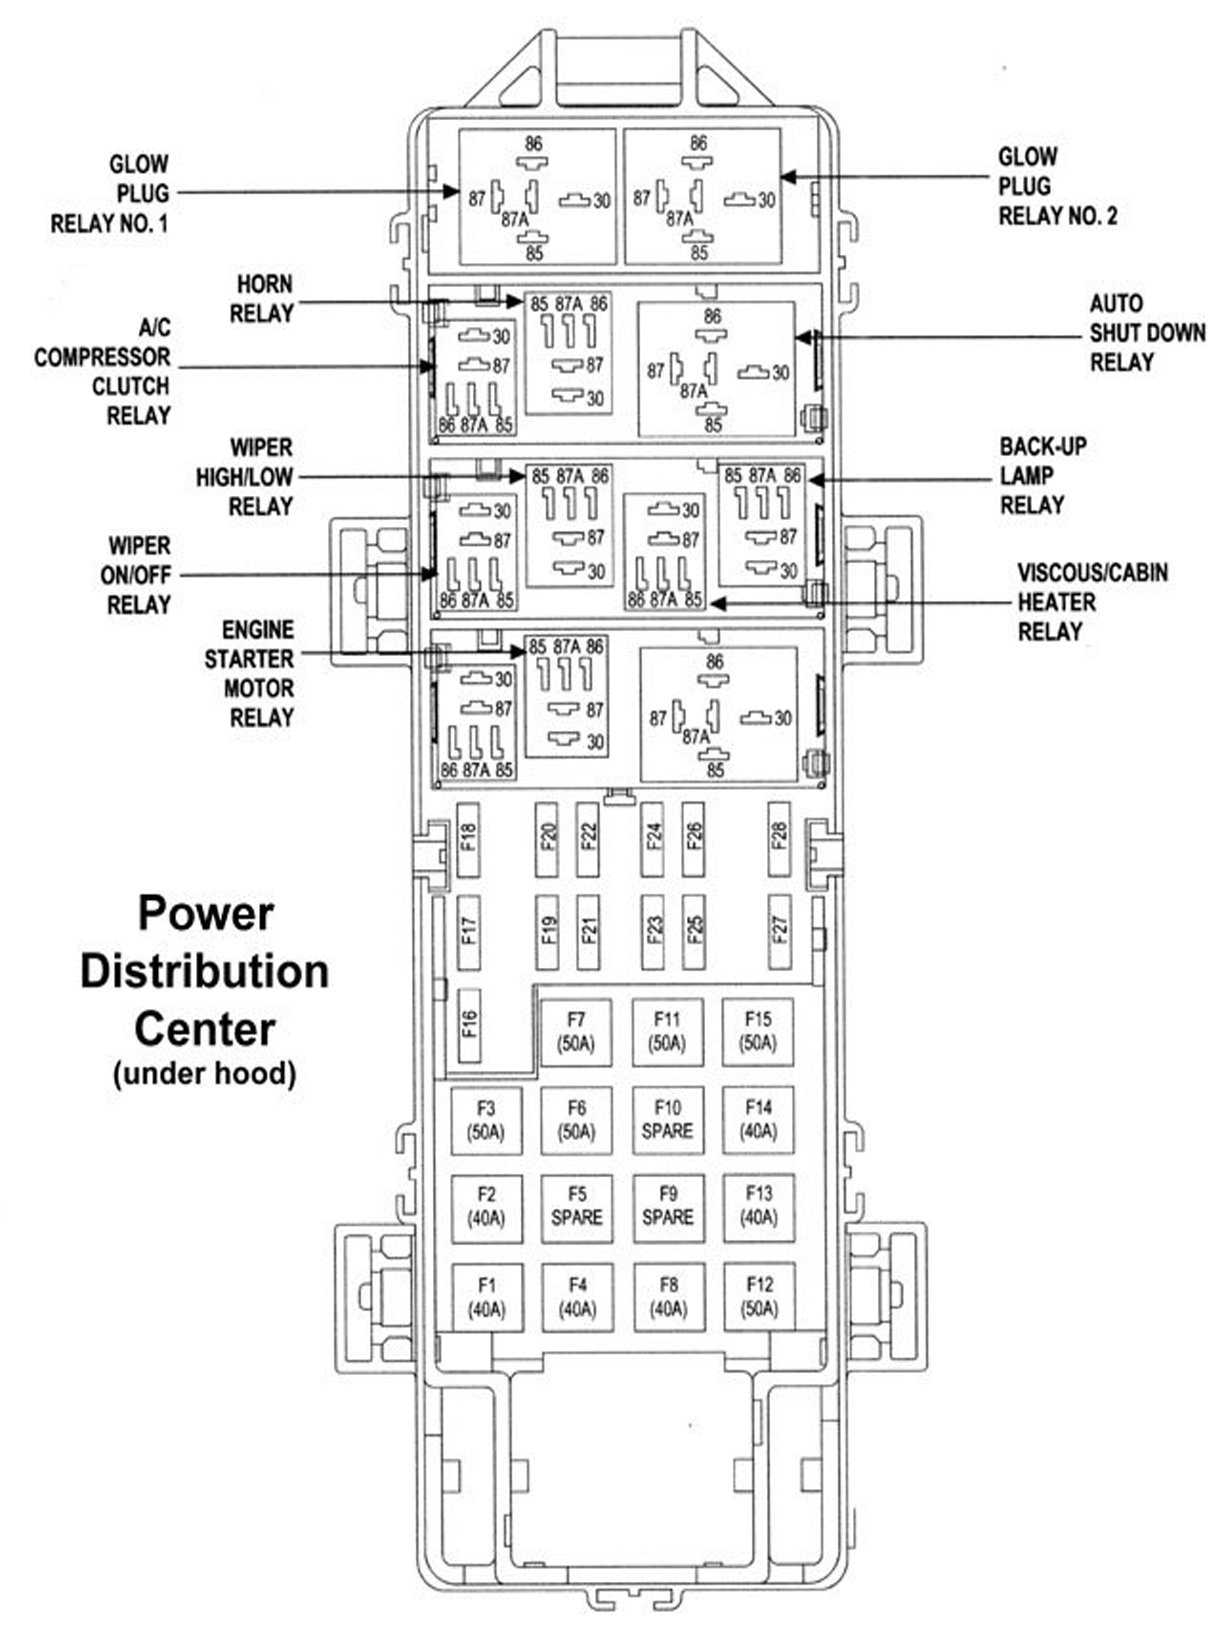 1999 Jeep Wrangler Fog Light Wiring Diagram